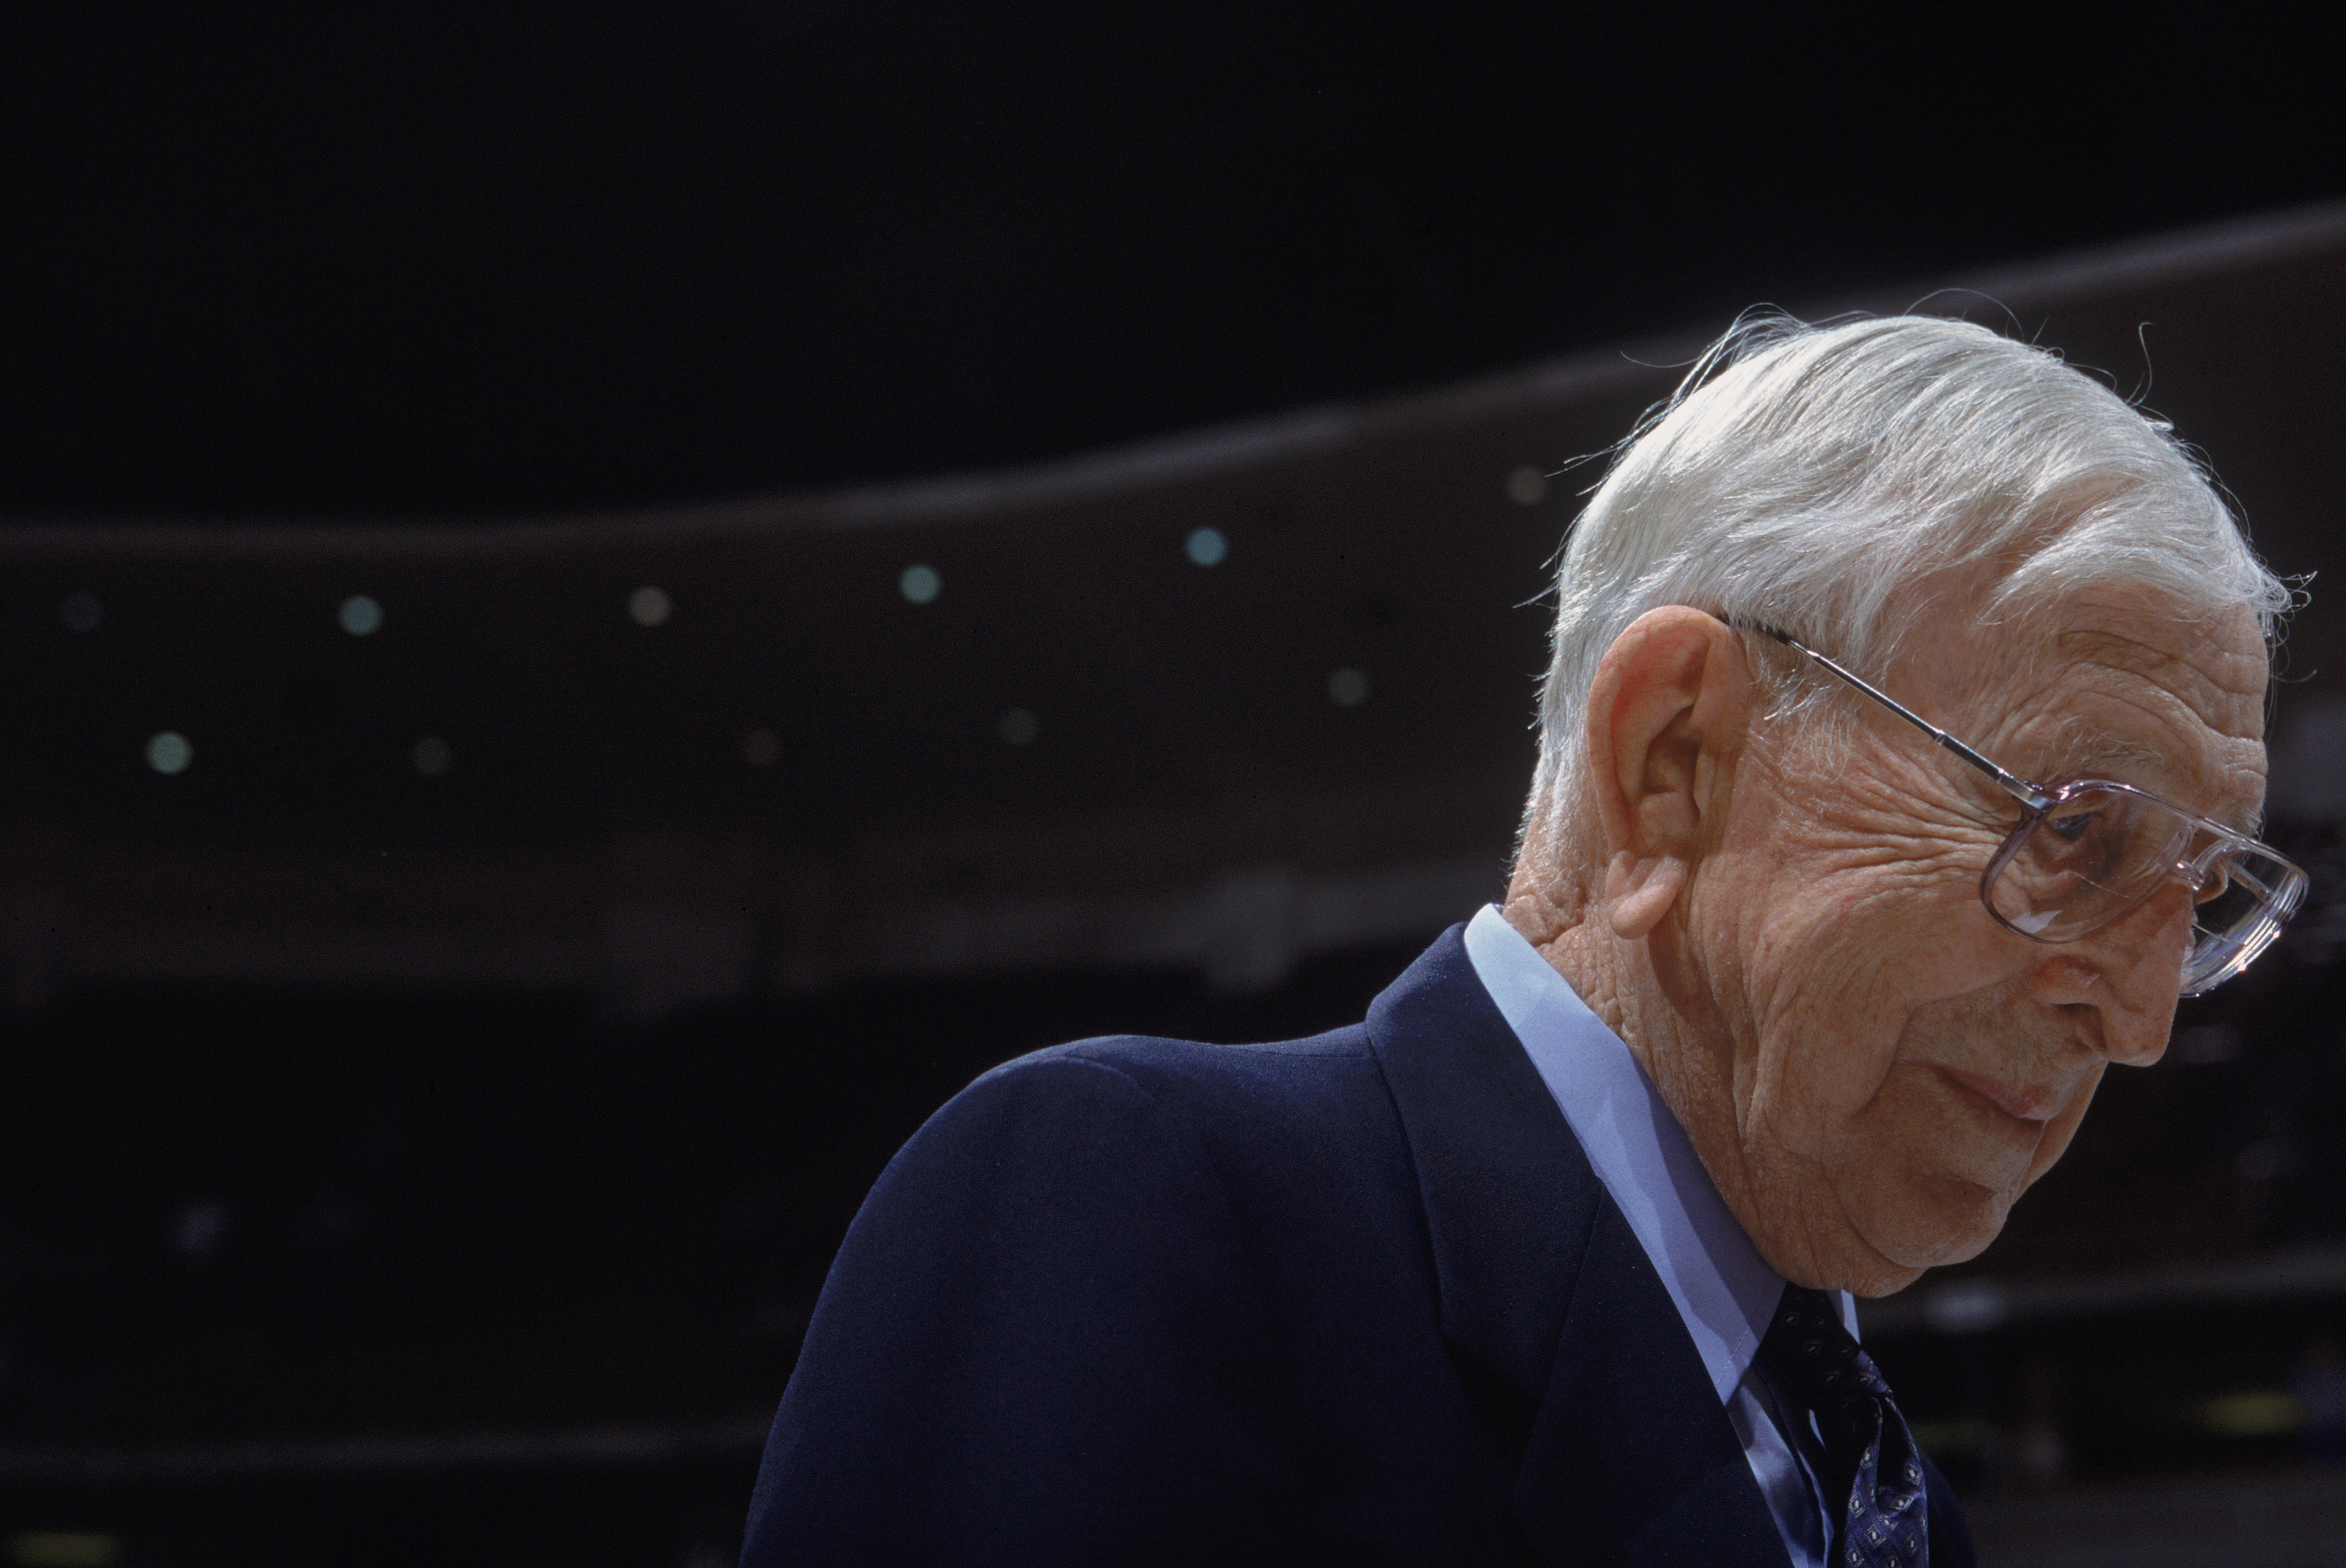 John Wooden in 2001. (Adam Pretty/Allsport)